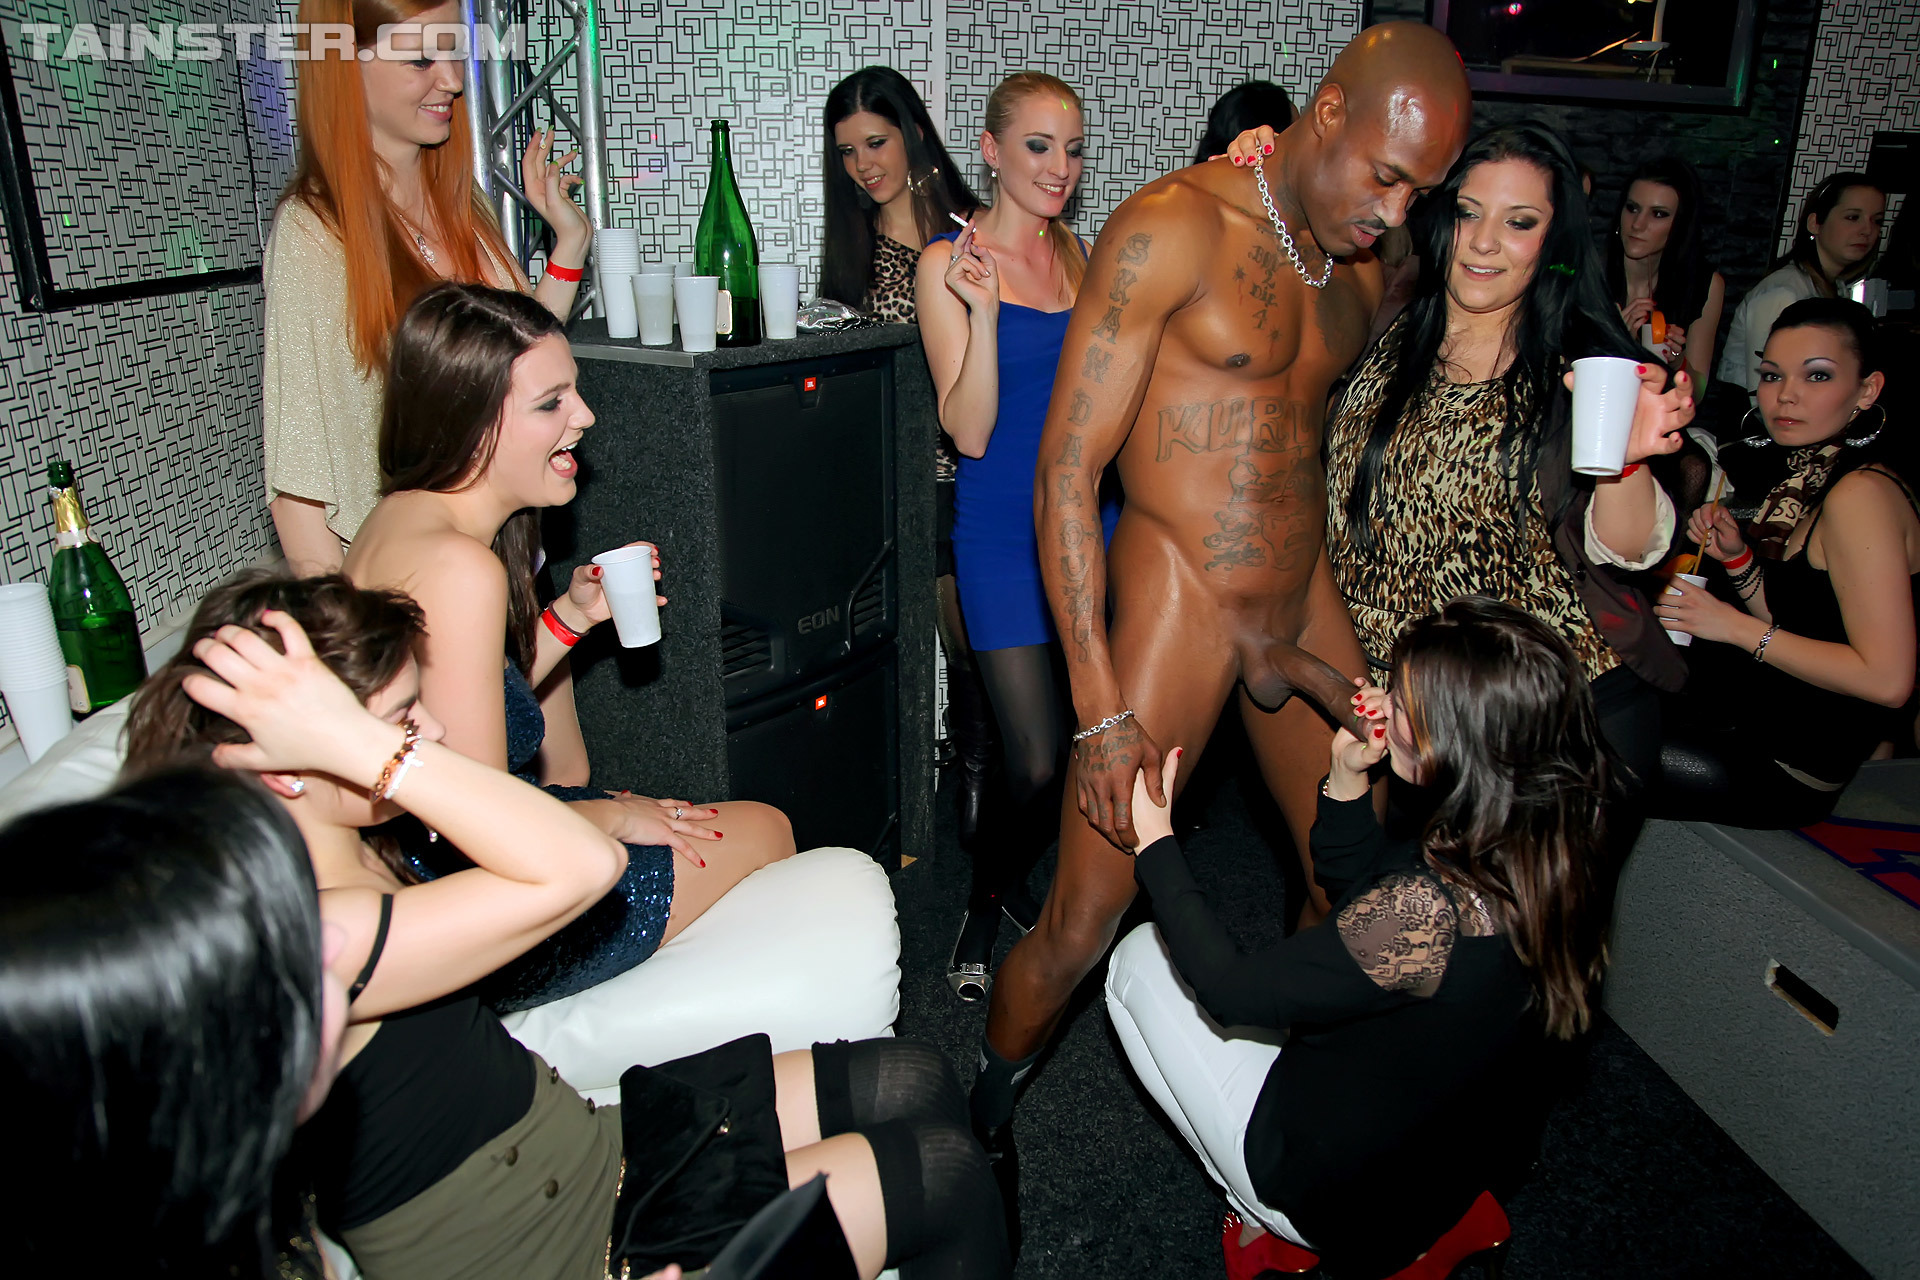 Fucked Pissing Girl Party